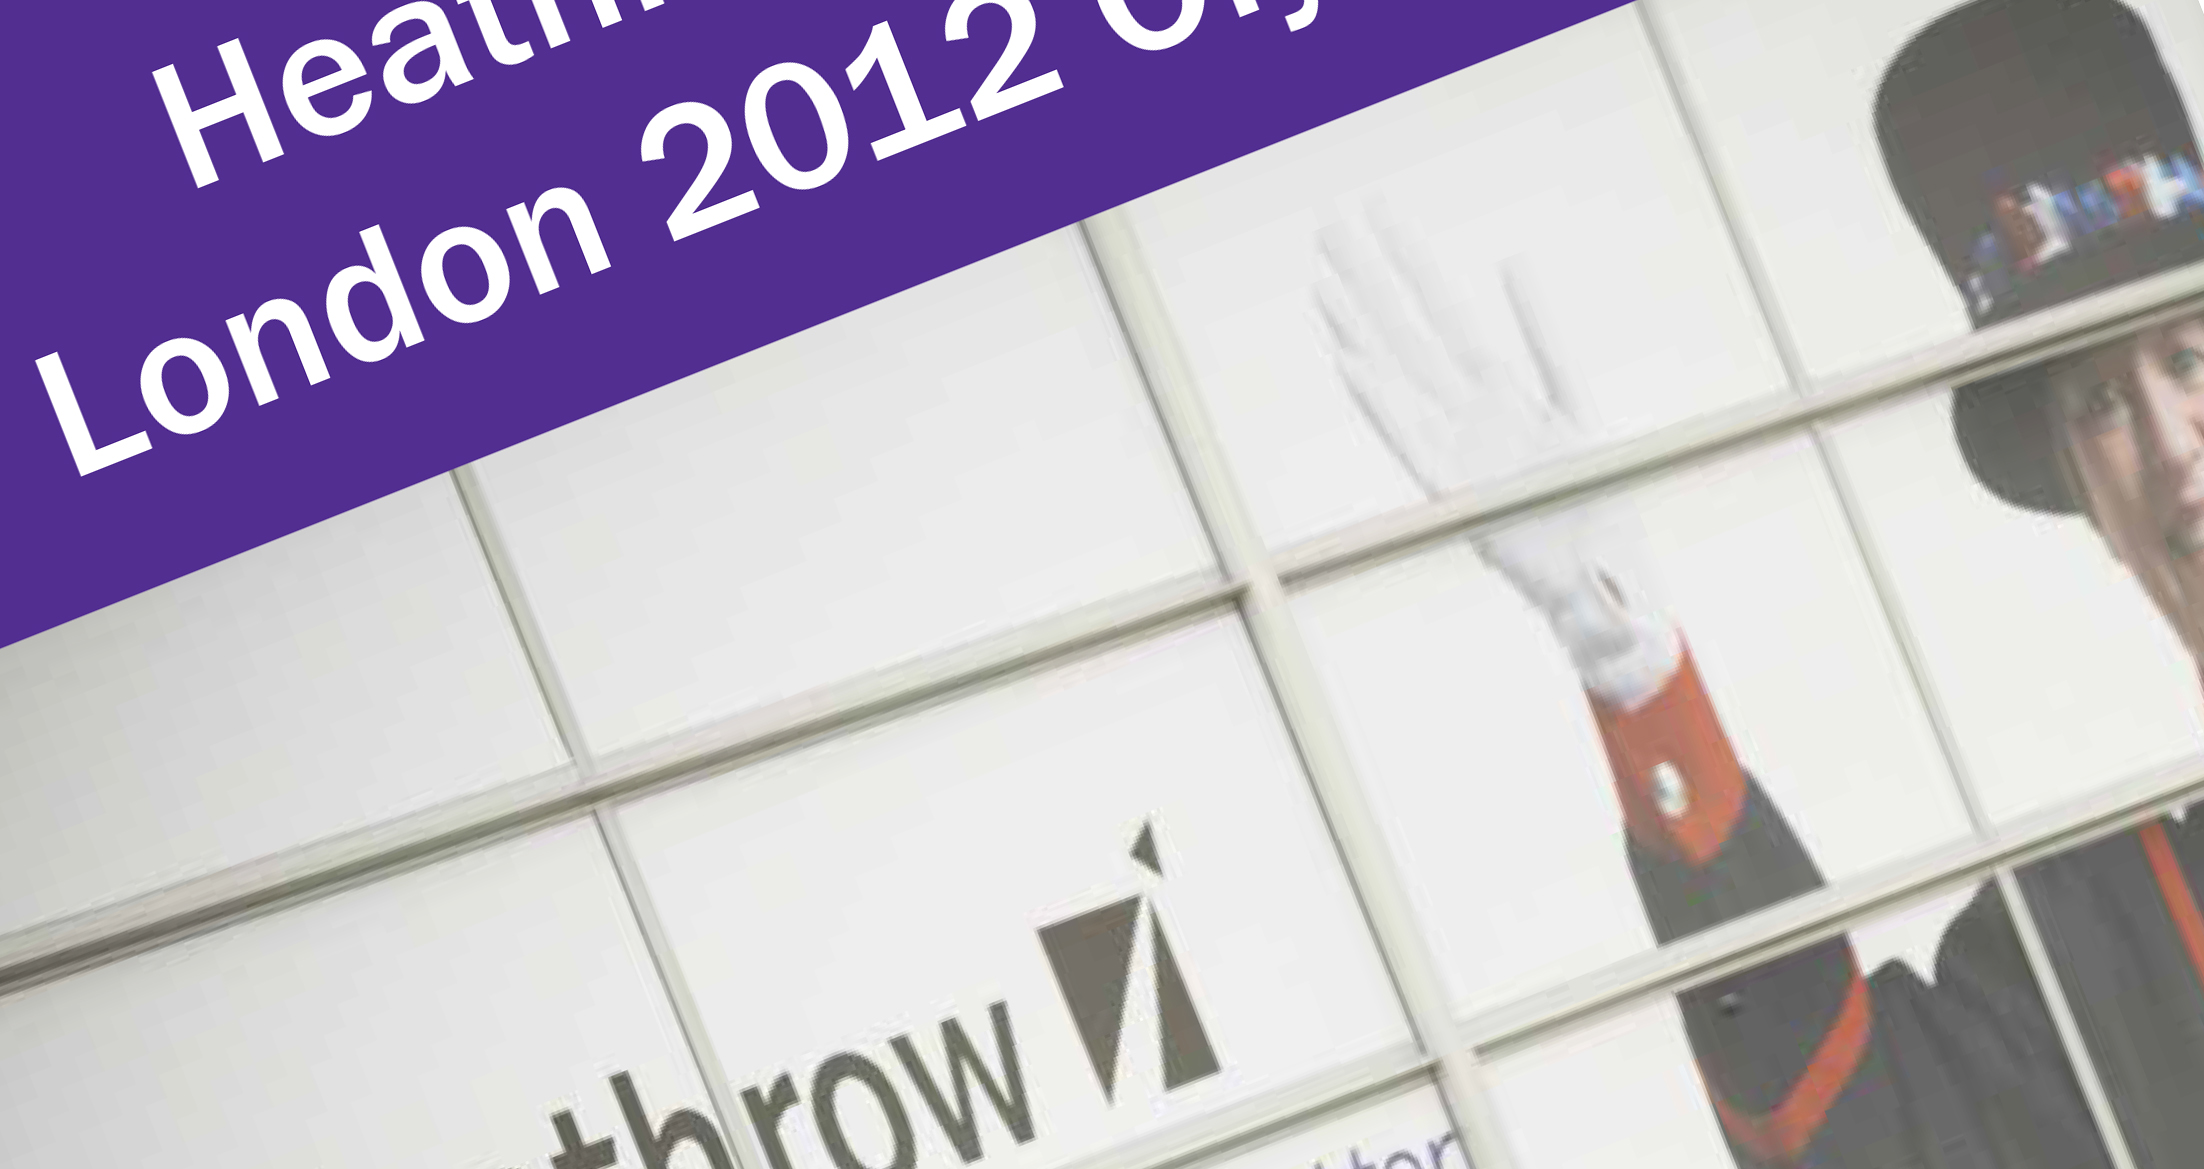 Heathrow and the London 2012 Olympics report